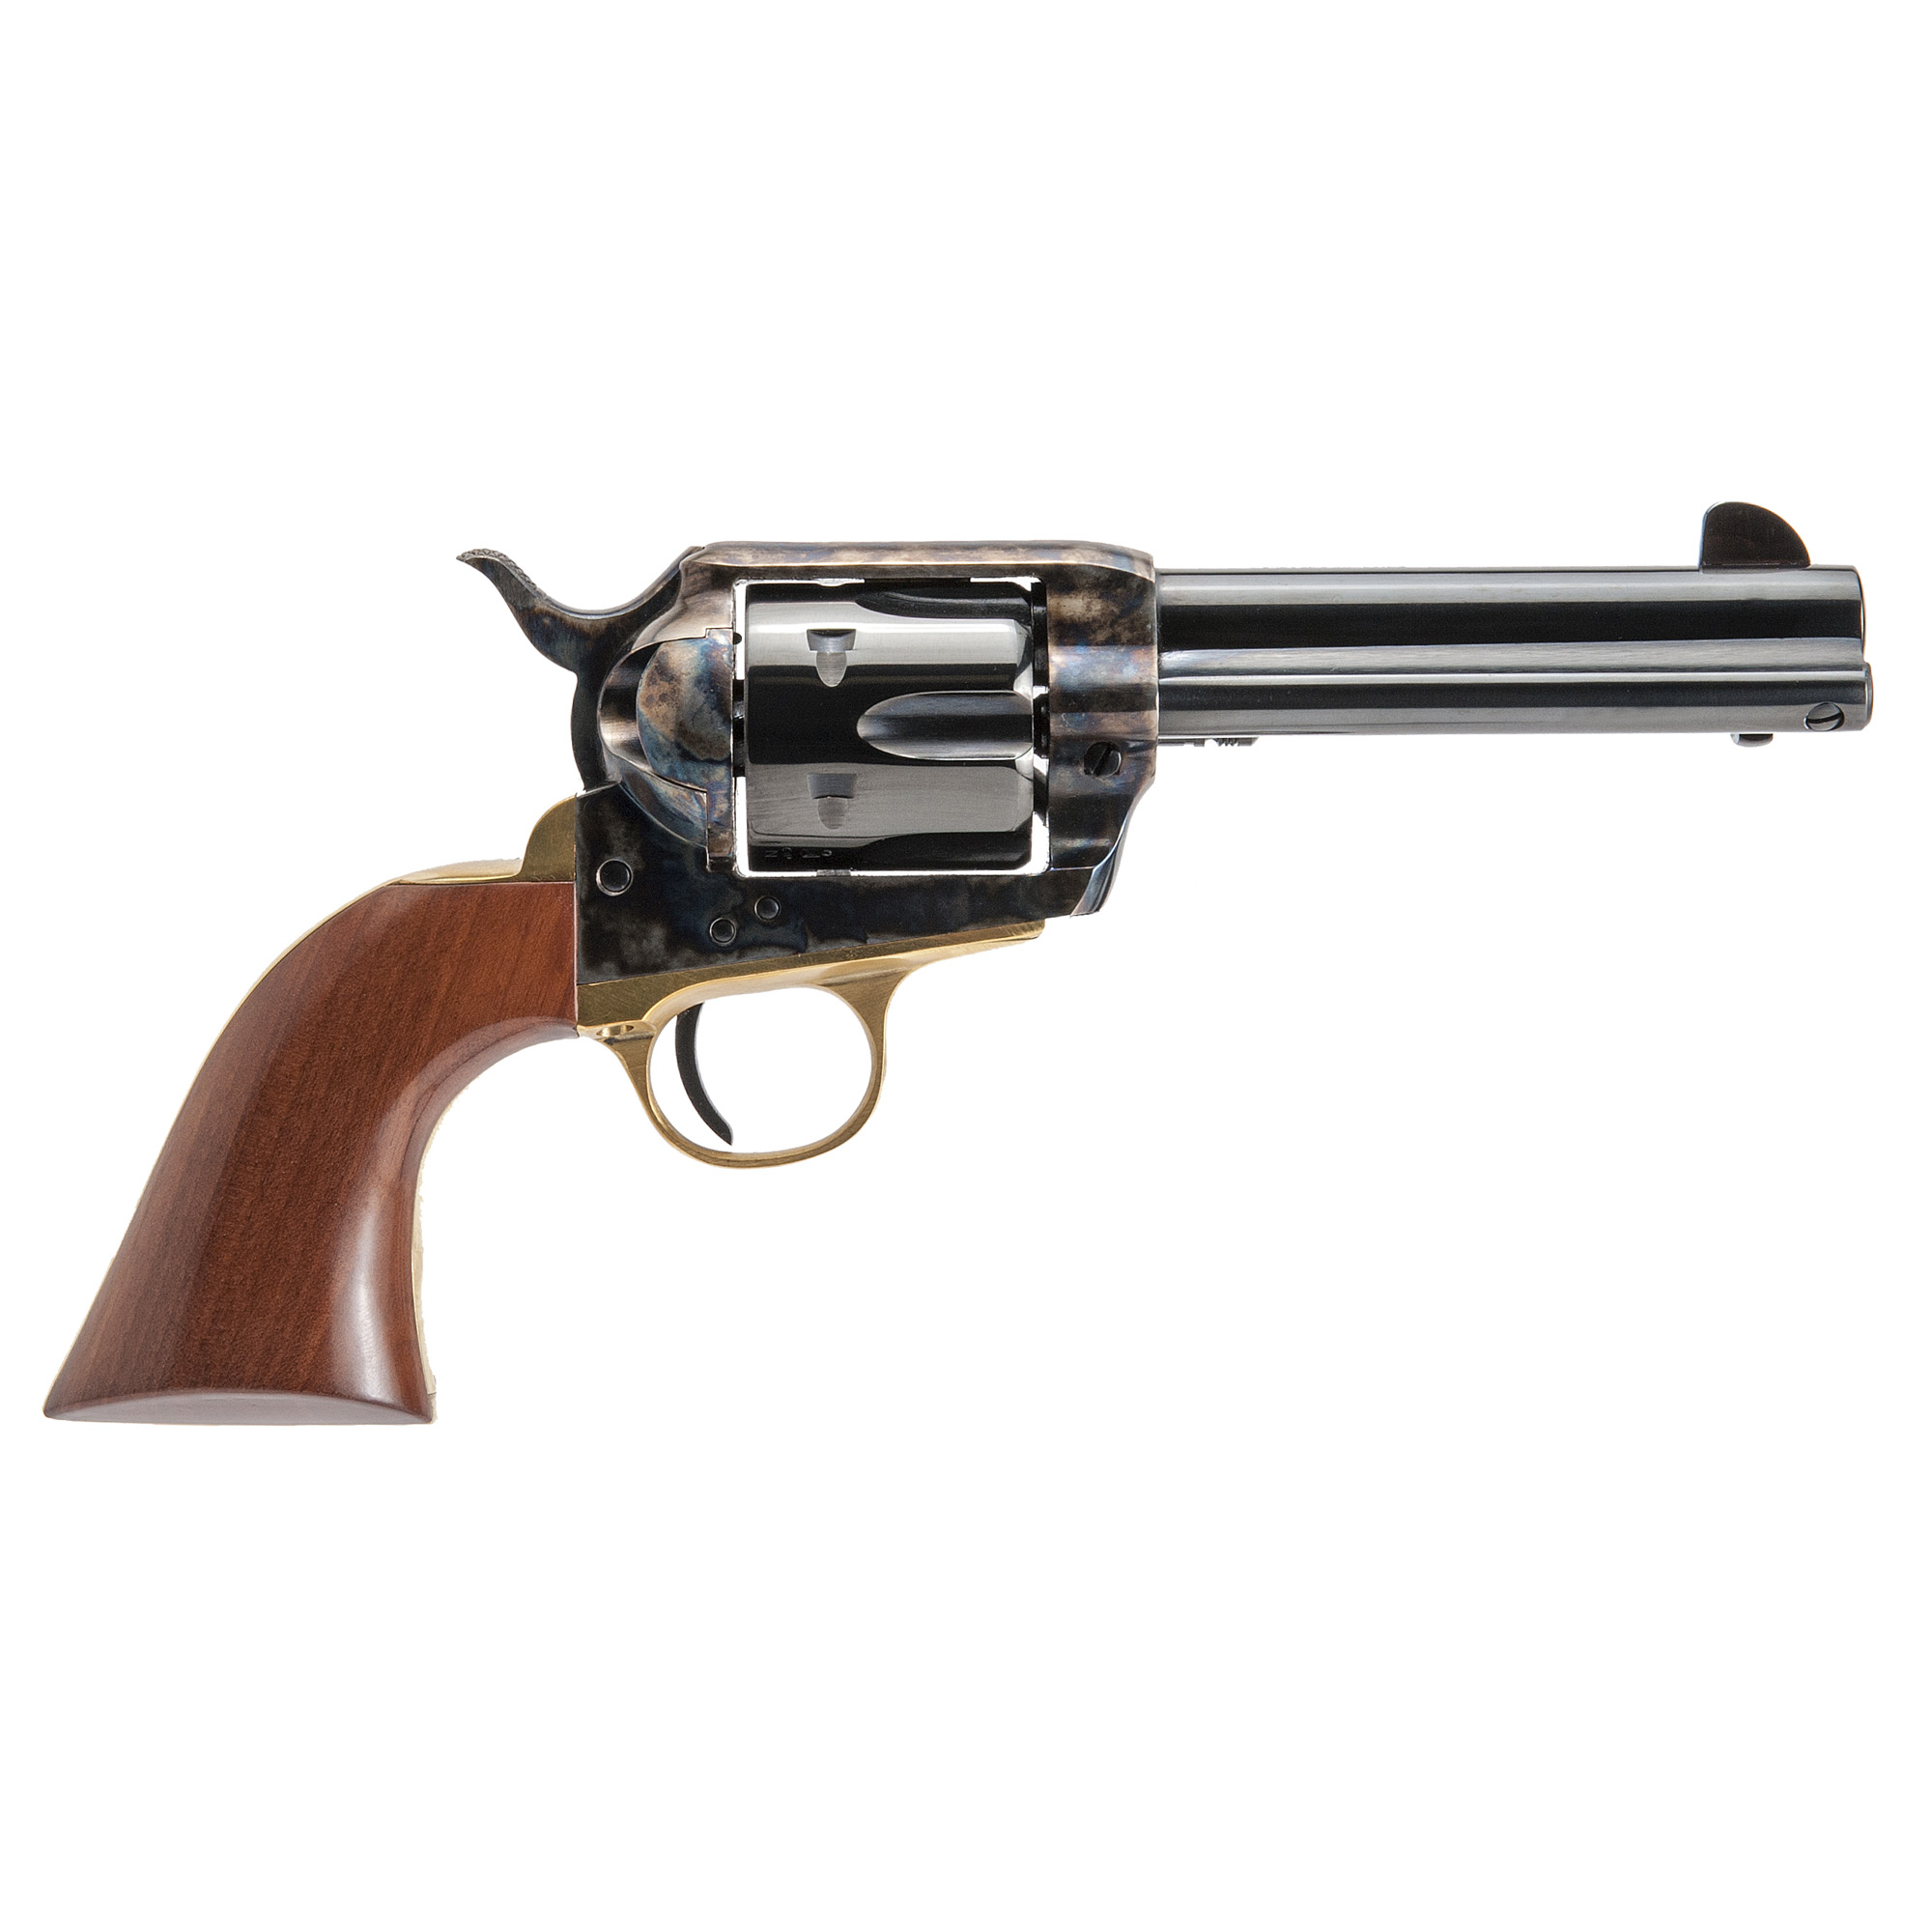 "The ""Pistolero"" Model .45 Long Colt features a 4 3/4"" blued barrel"" color case hardened frame and smooth walnut grips."